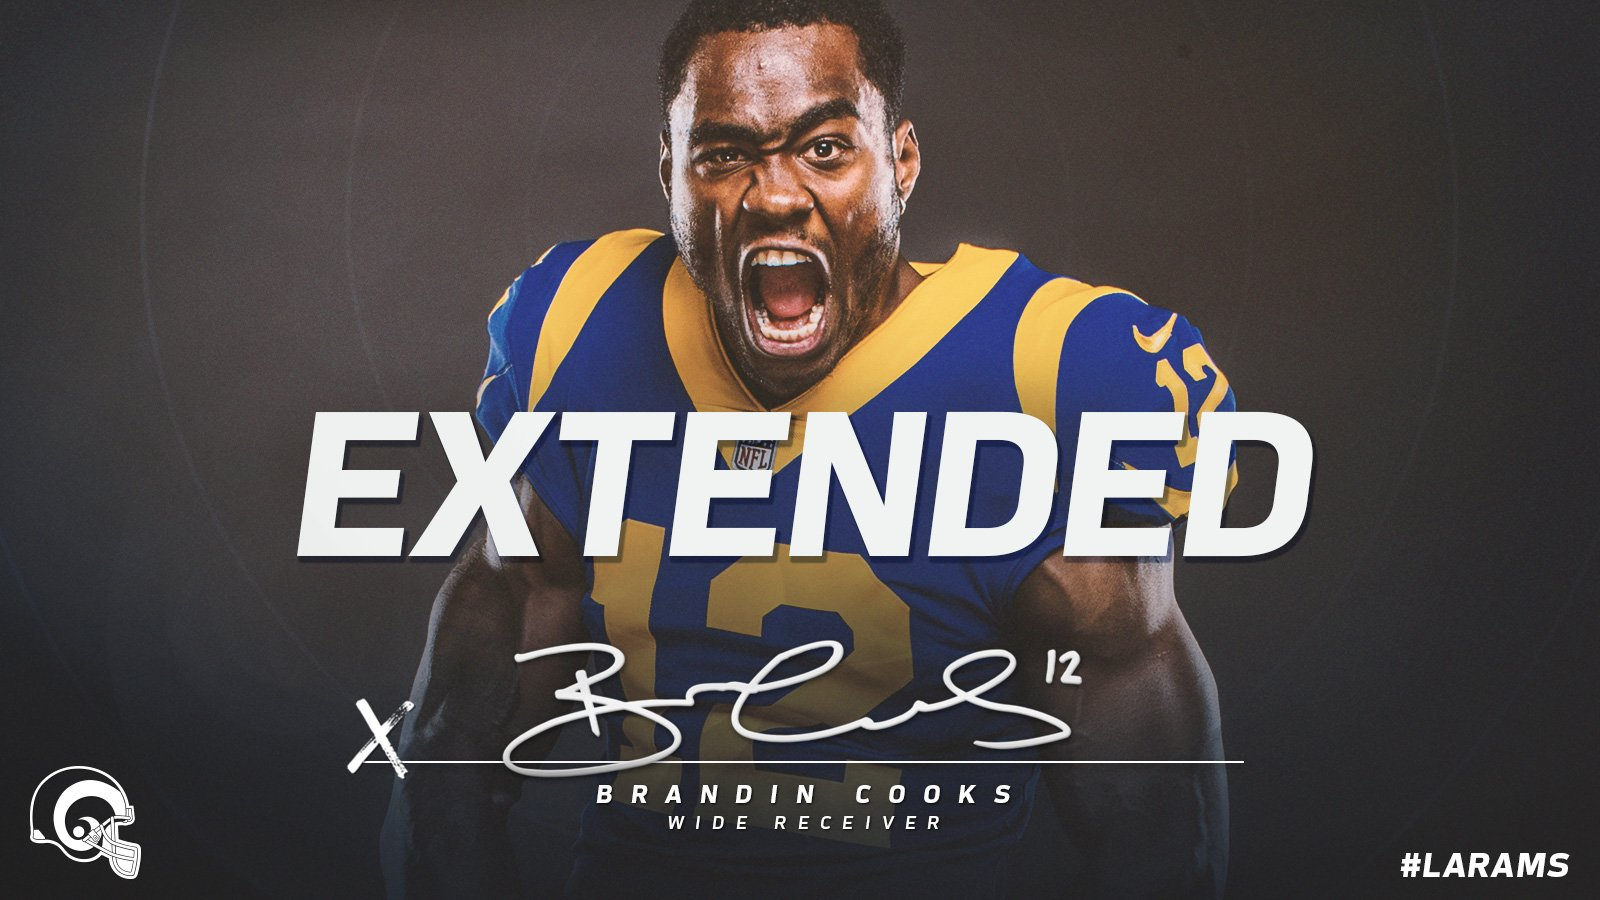 The Archer is here to stay. ��  #LARams sign @brandincooks to a 5-year extension �� » https://t.co/iw2yJ5xptt https://t.co/JL6KxZjGC2